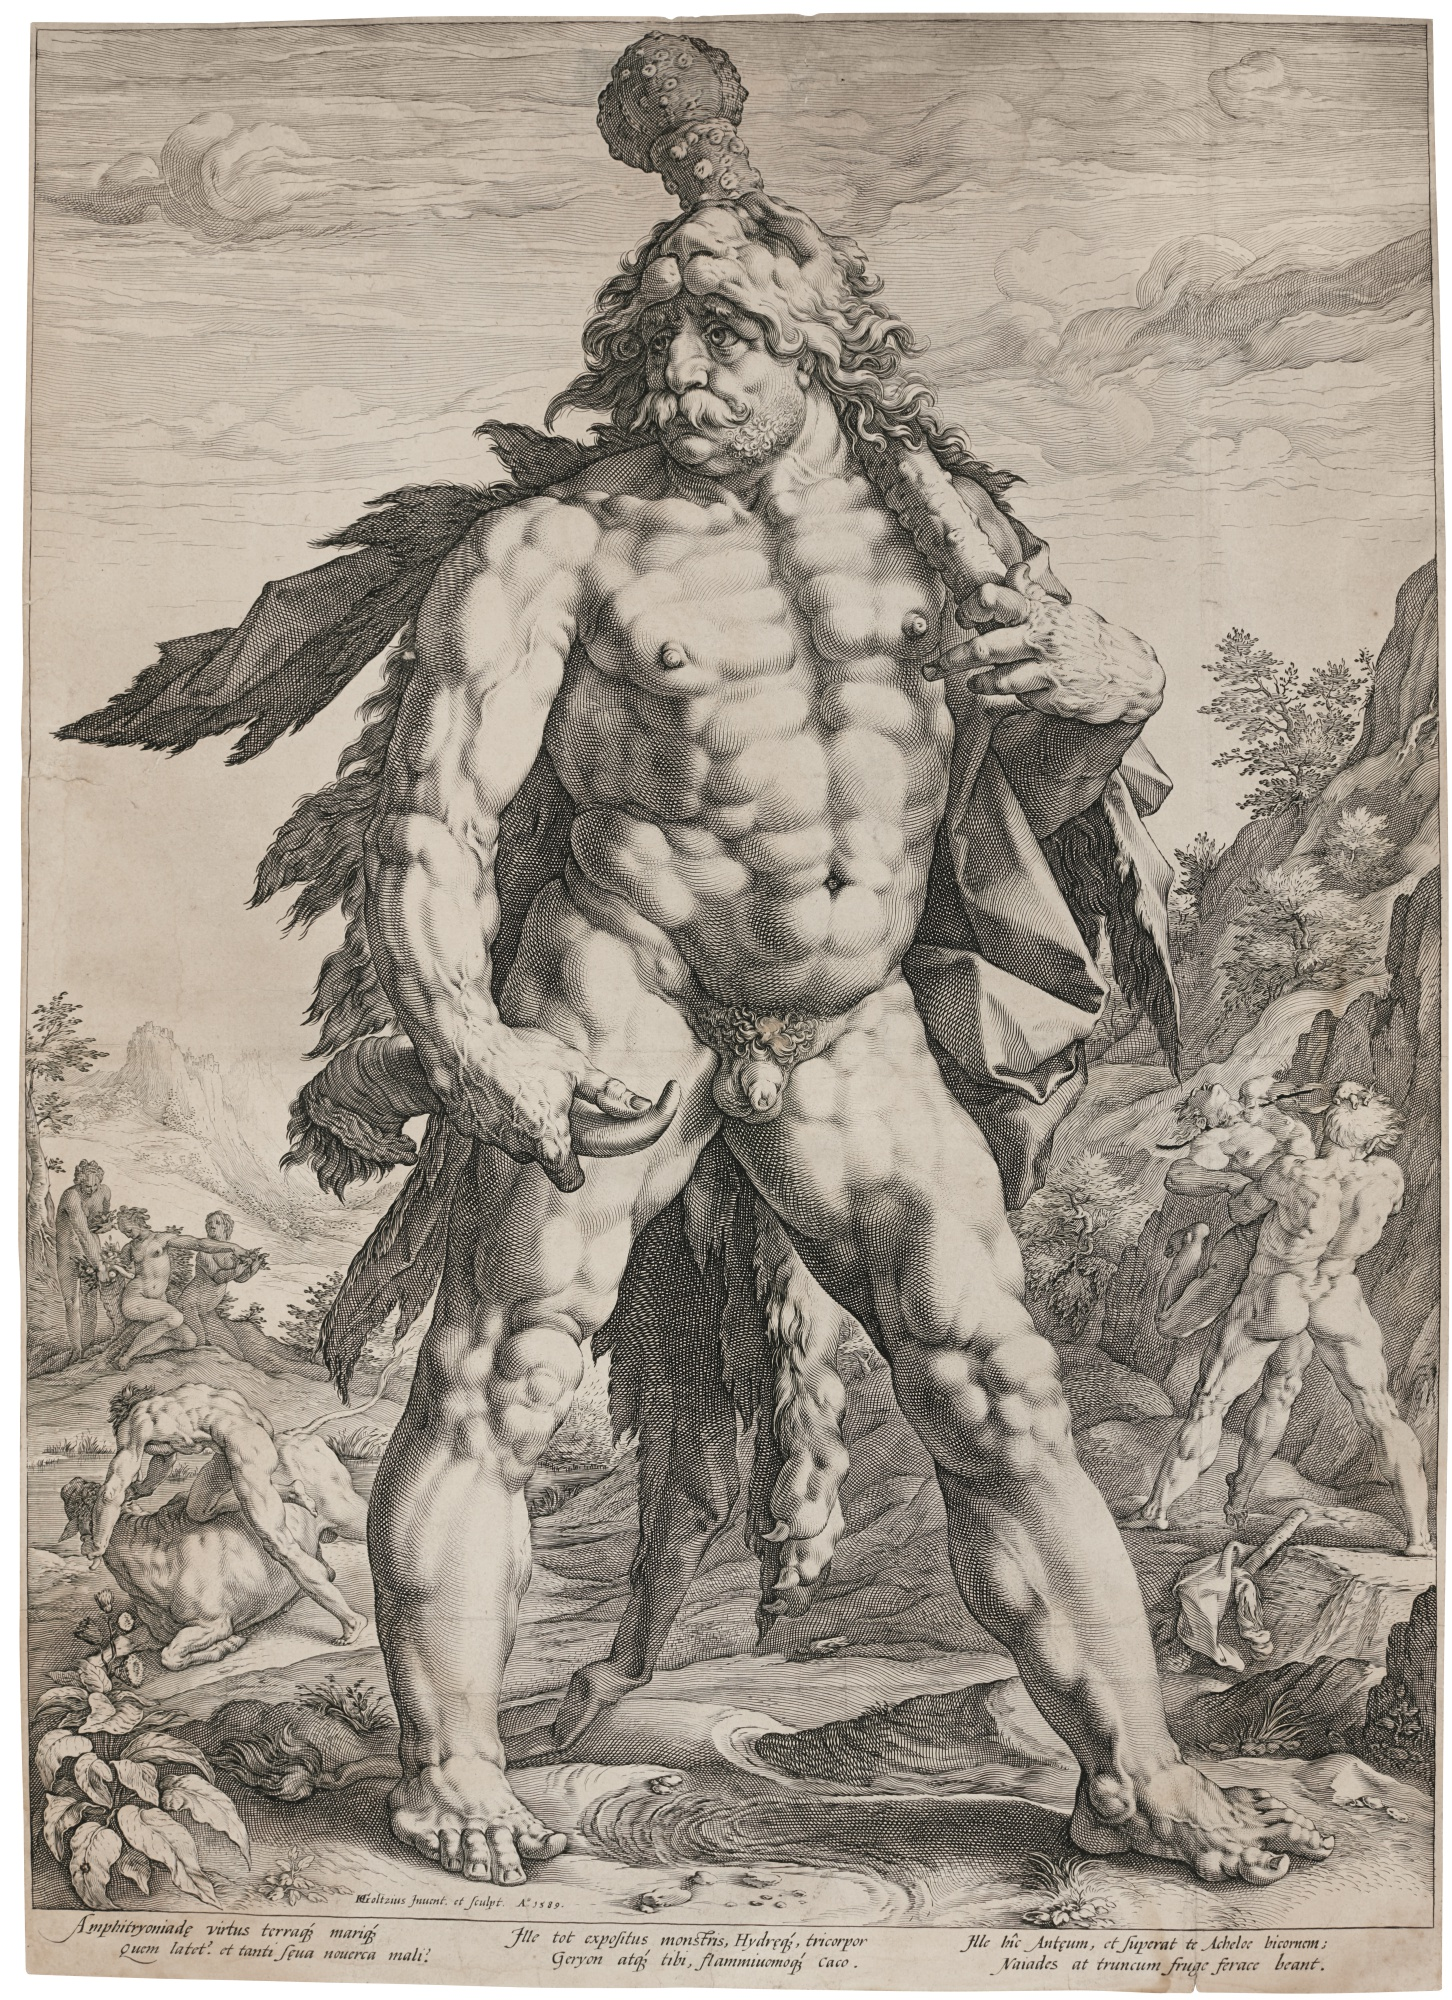 Hendrick Goltzius-The Large Hercules (B. 142; Holl. 143; Strauss 283)-1589